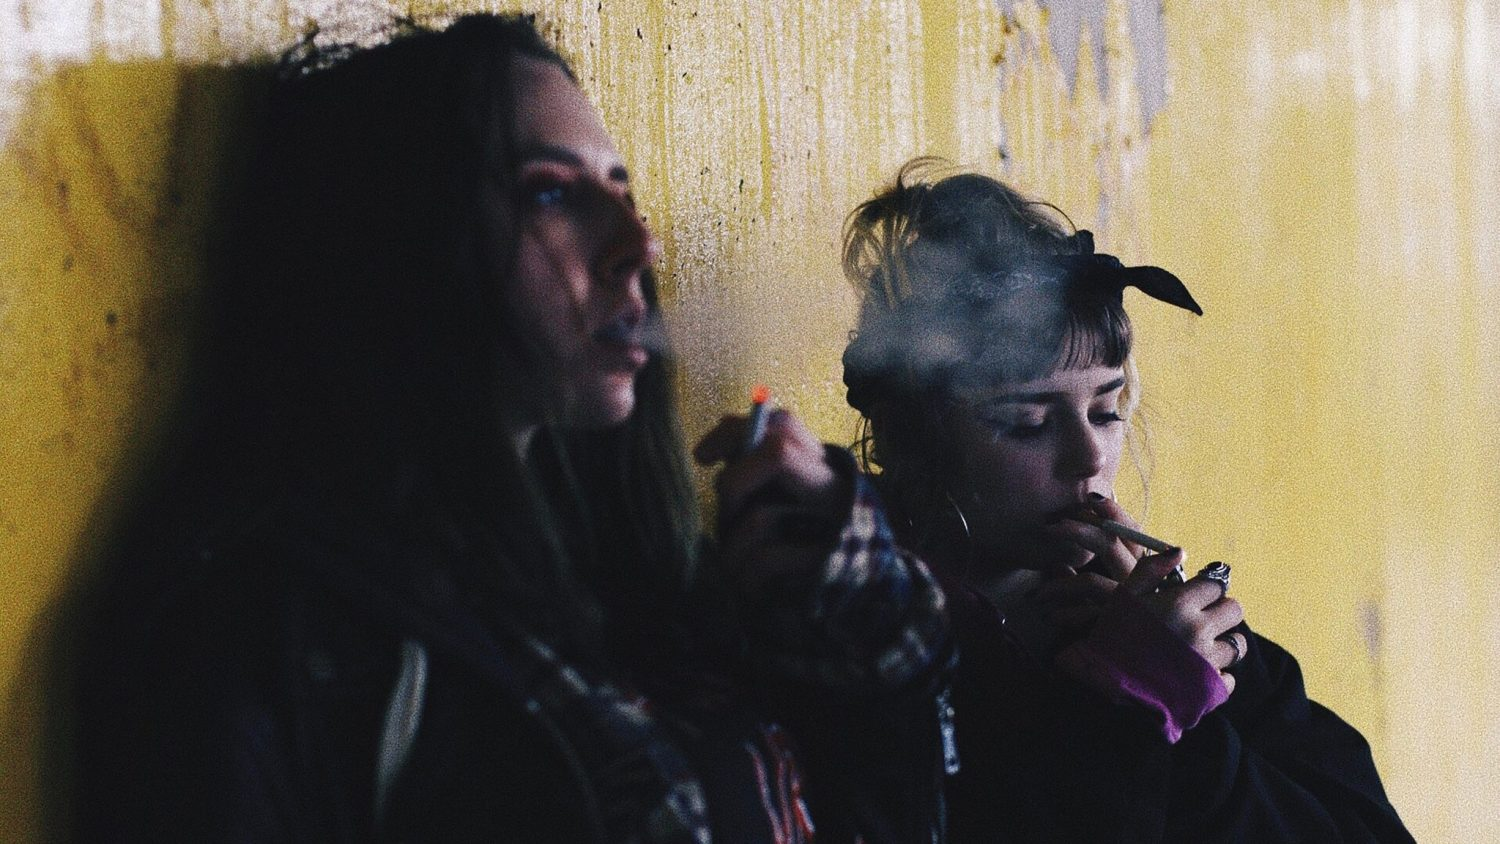 Cigarettes Vs Blunts: Is One More Harmful Than The Other?